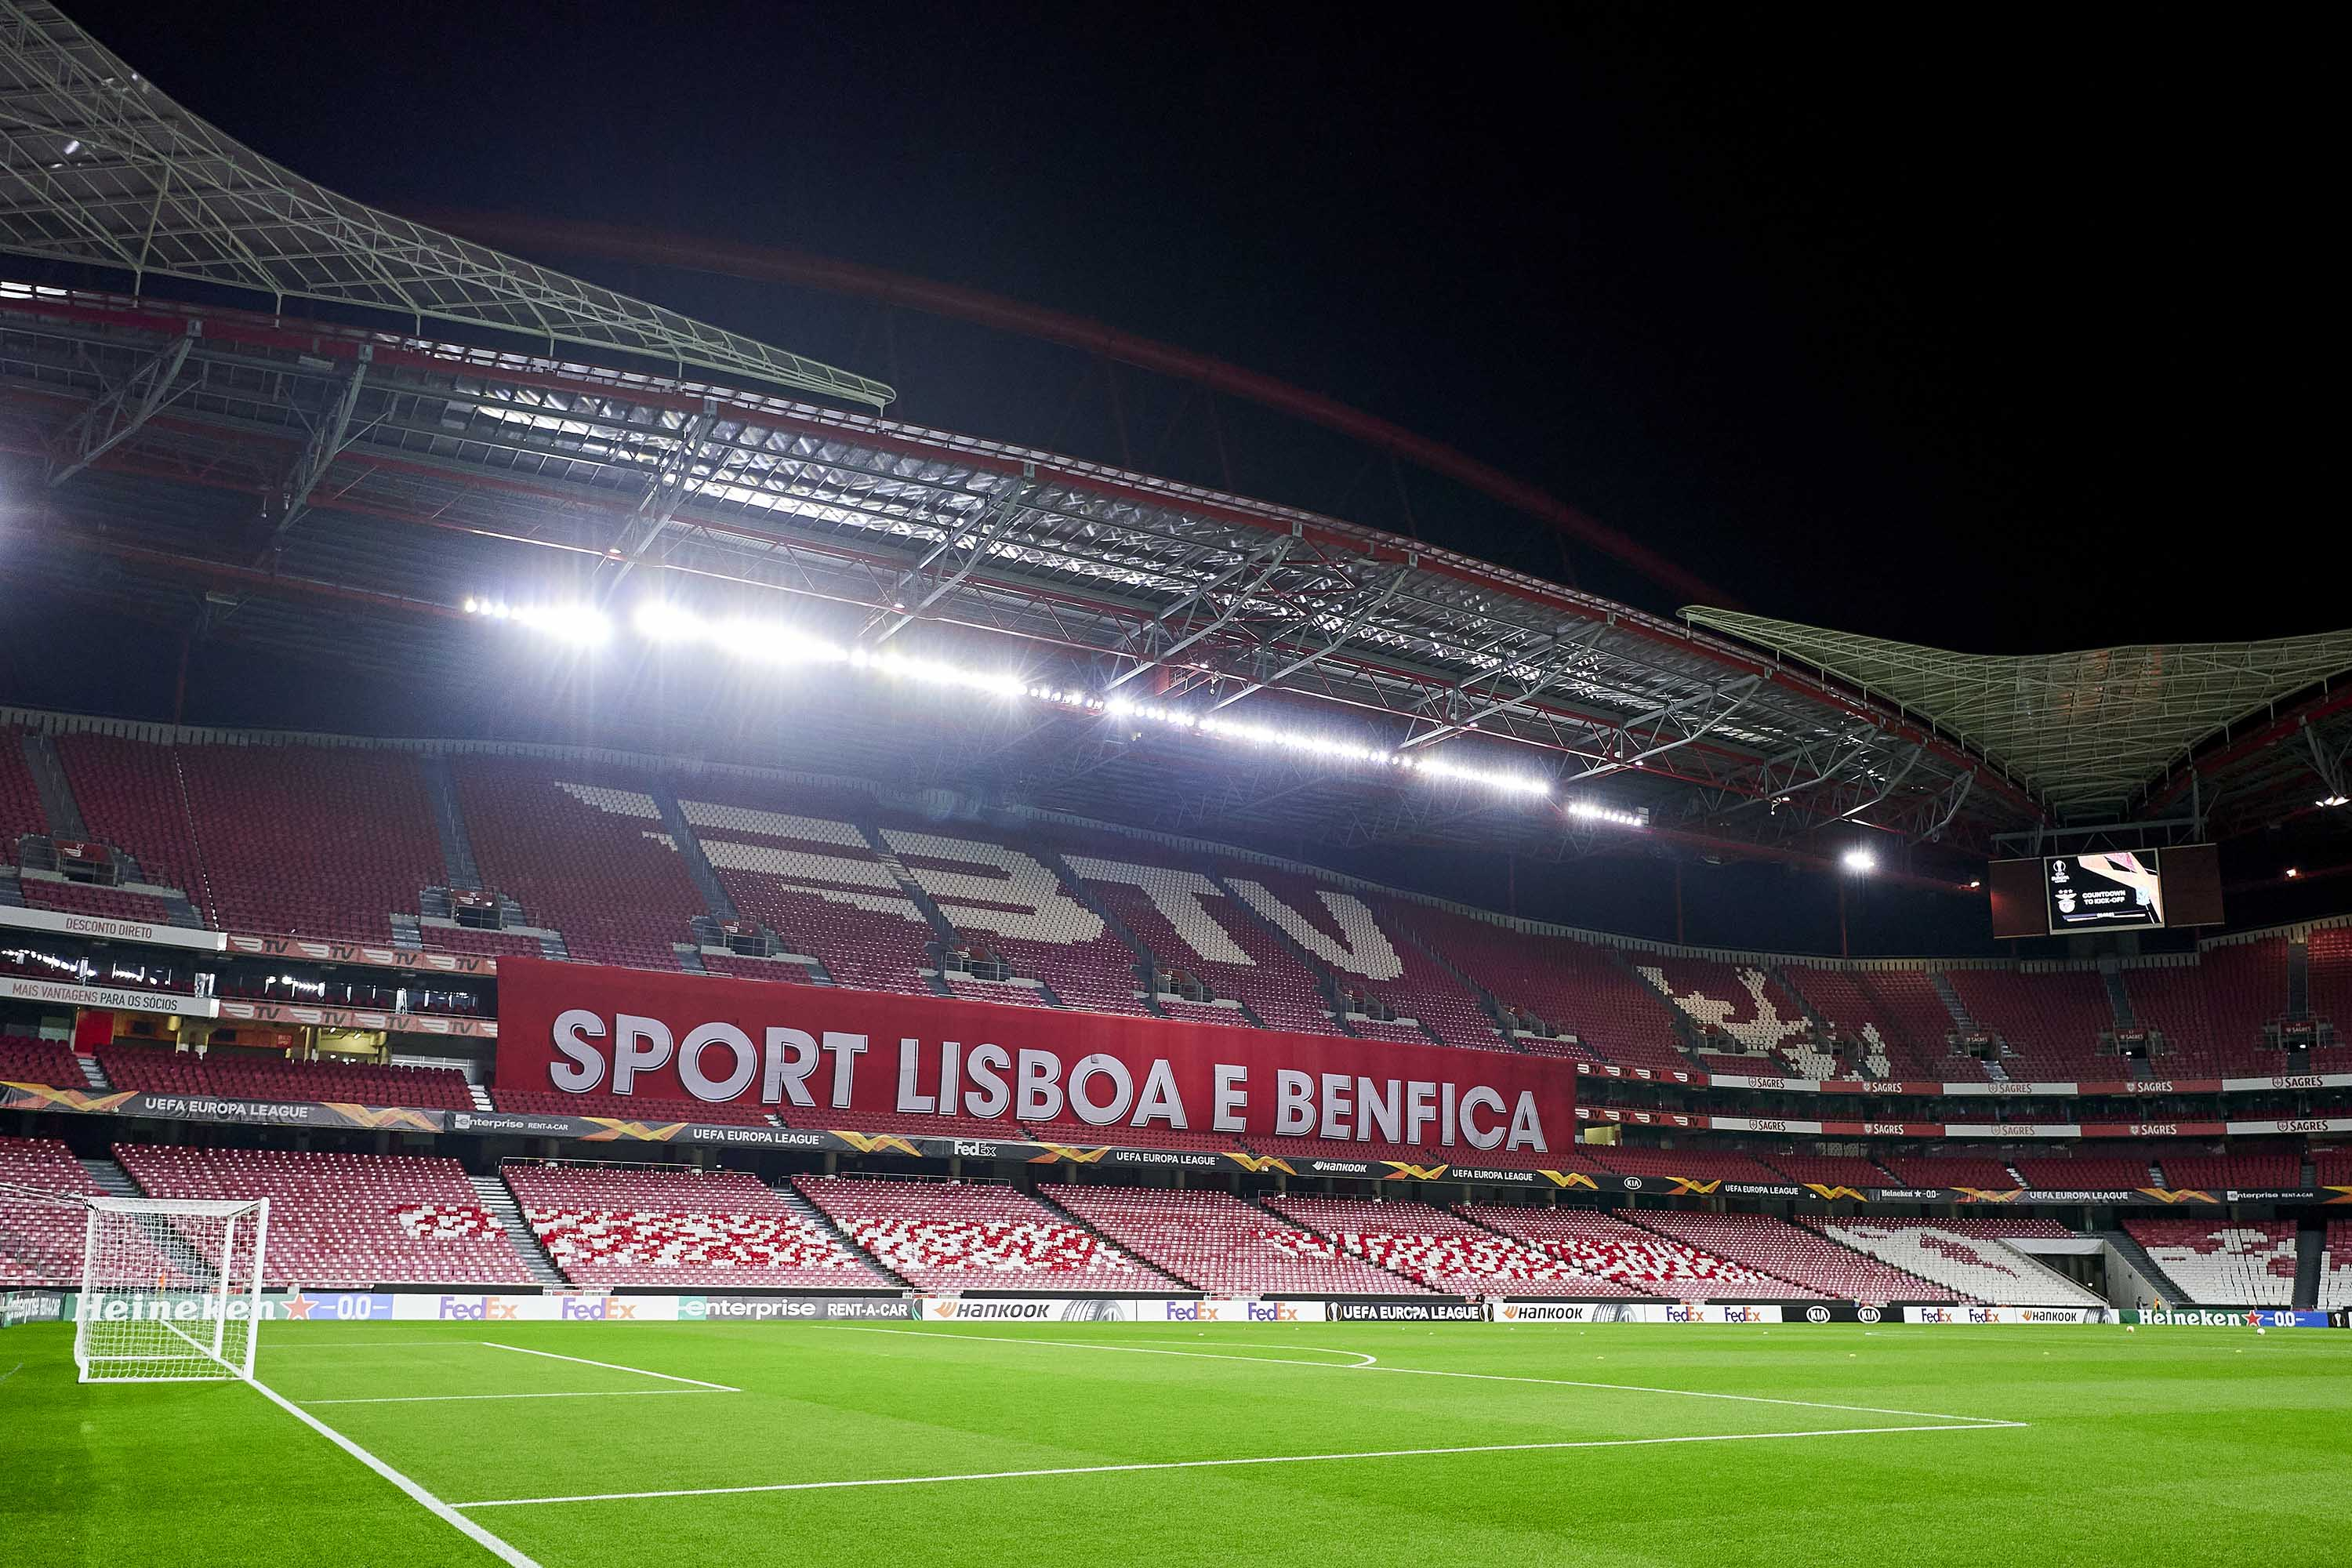 The Estadio da Luz in Lisbon, Portugal, prior to a match between SL Benfica and Lech Poznan in December 2020.